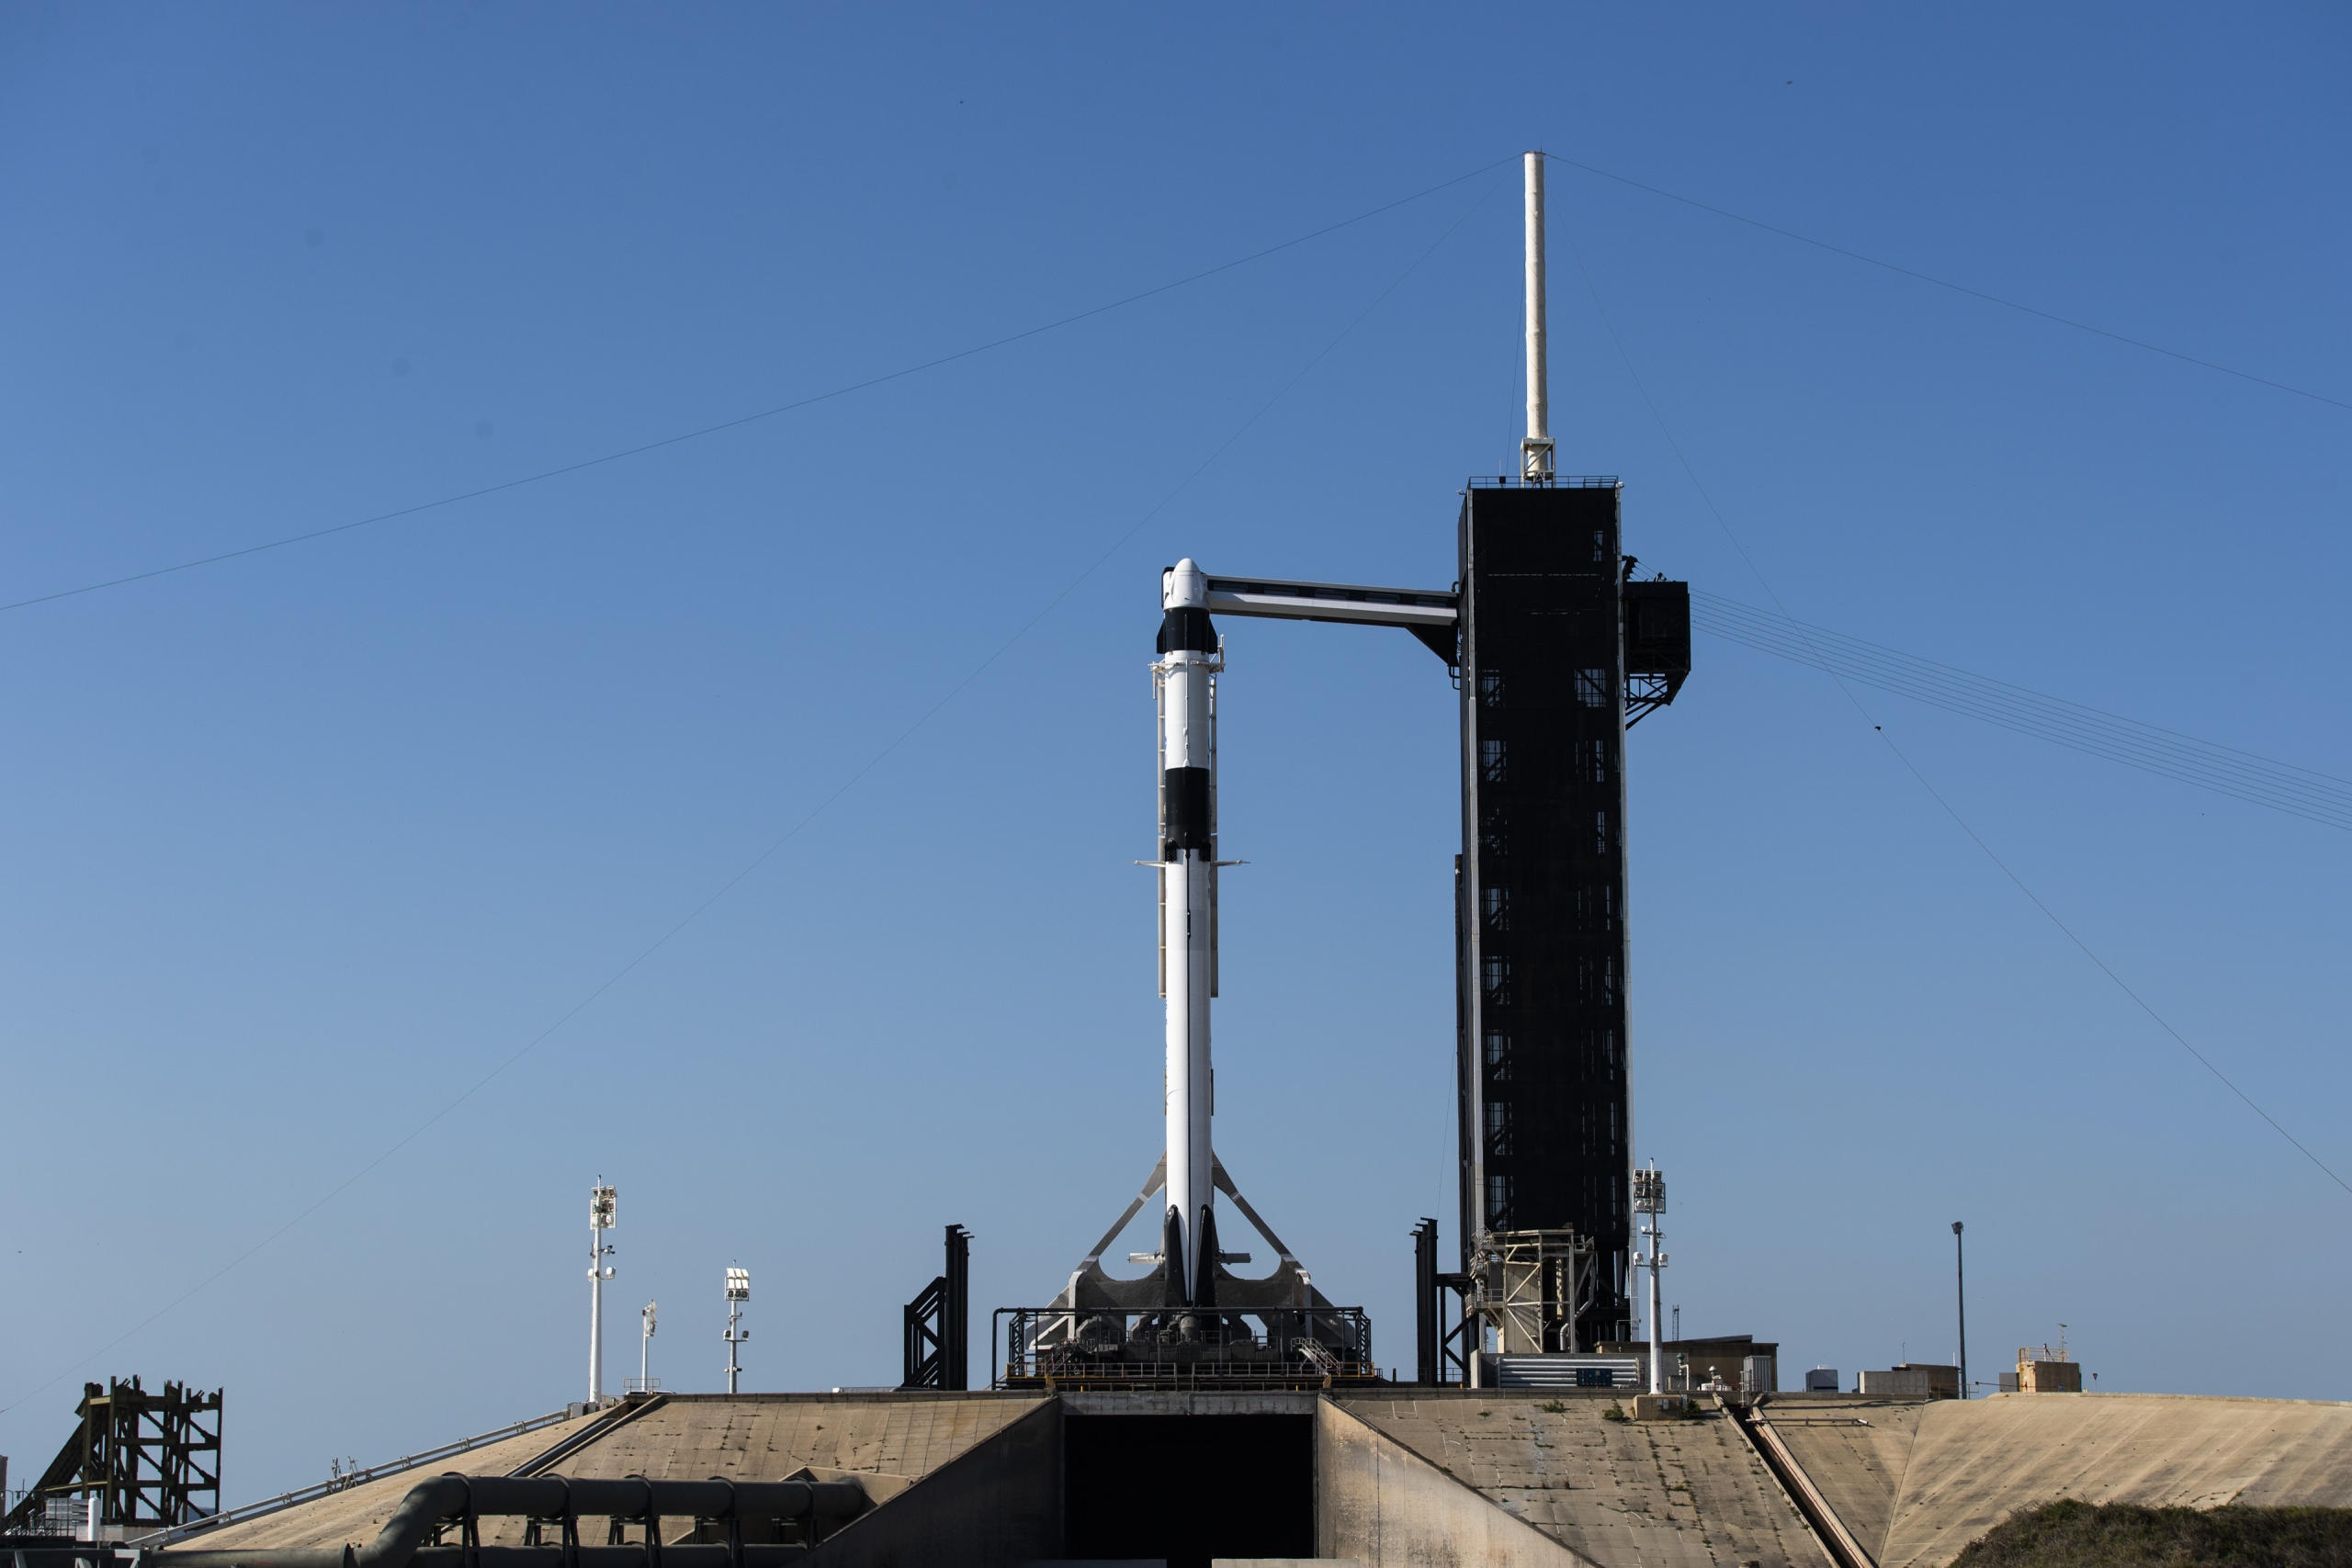 SpaceX, Falcon 9 for Demo-2 mission ready for critical static fire